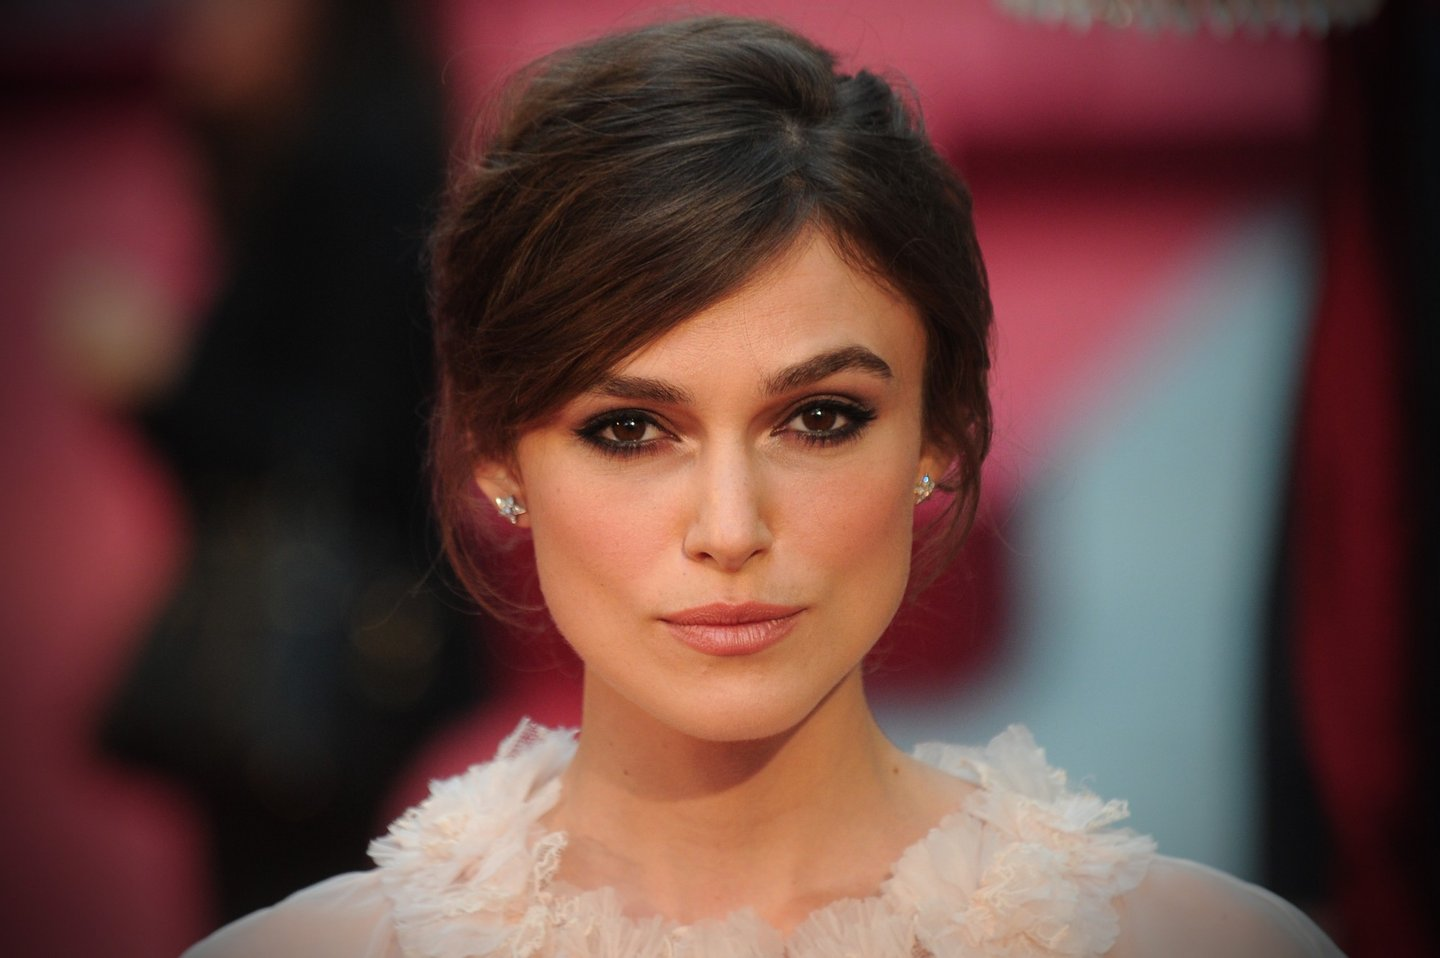 British actress Keira Knightley attends the worldwide premiere of 'Anna Karenina' in central London on September 4, 2012. AFP PHOTO/CARL COURT (Photo credit should read CARL COURT/AFP/GettyImages)